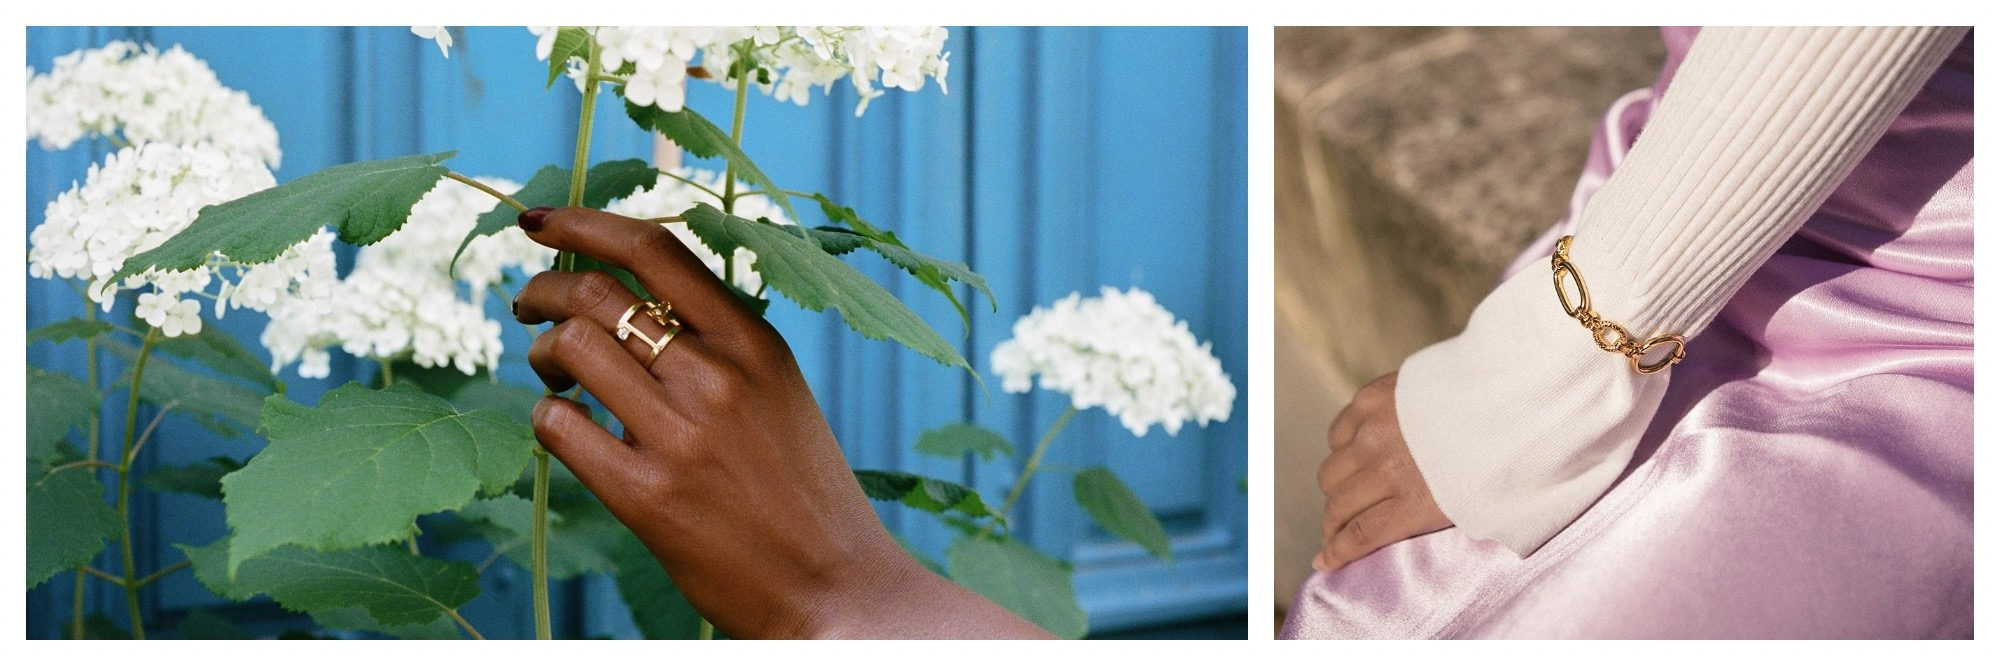 Jewelry by Parisian designer Louise Damas like a ring (left) and a chain bracelet (right).